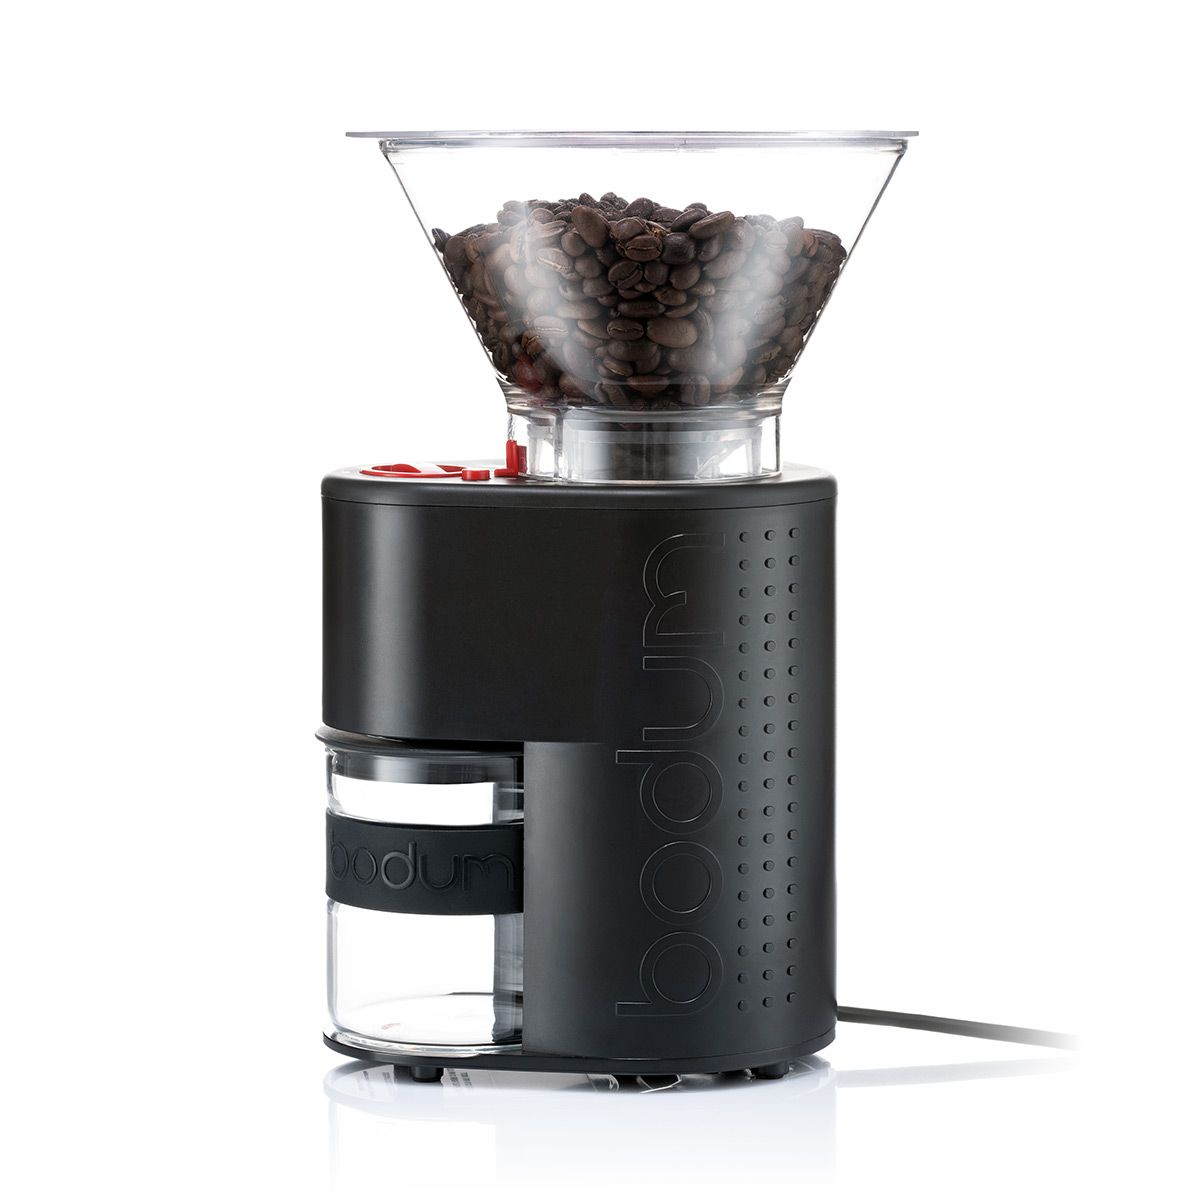 Electric Burr Grinder BISTRO Bodum - Black